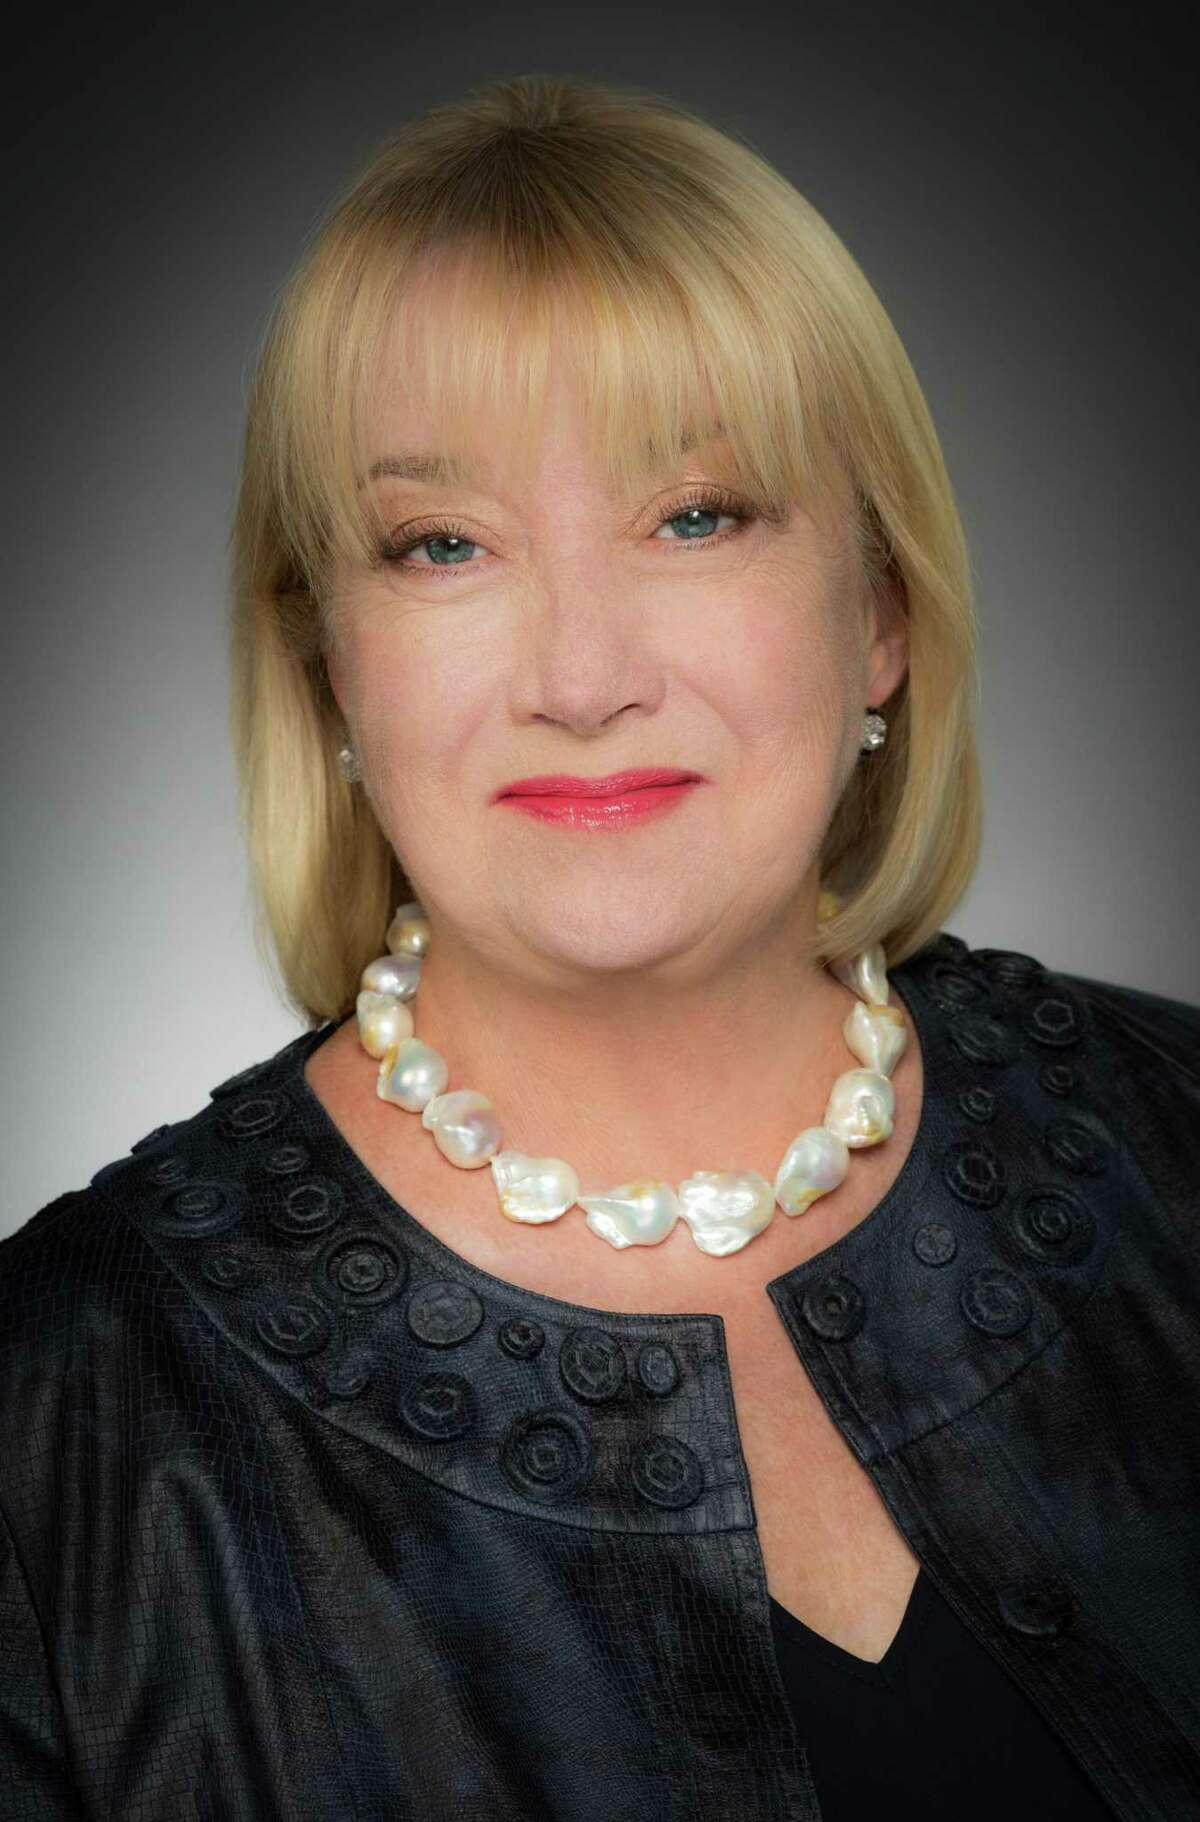 South Texas Money Management founder and Chairman Jeanie Wyatt died from a rare form of cancer Tuesday. She was 65.